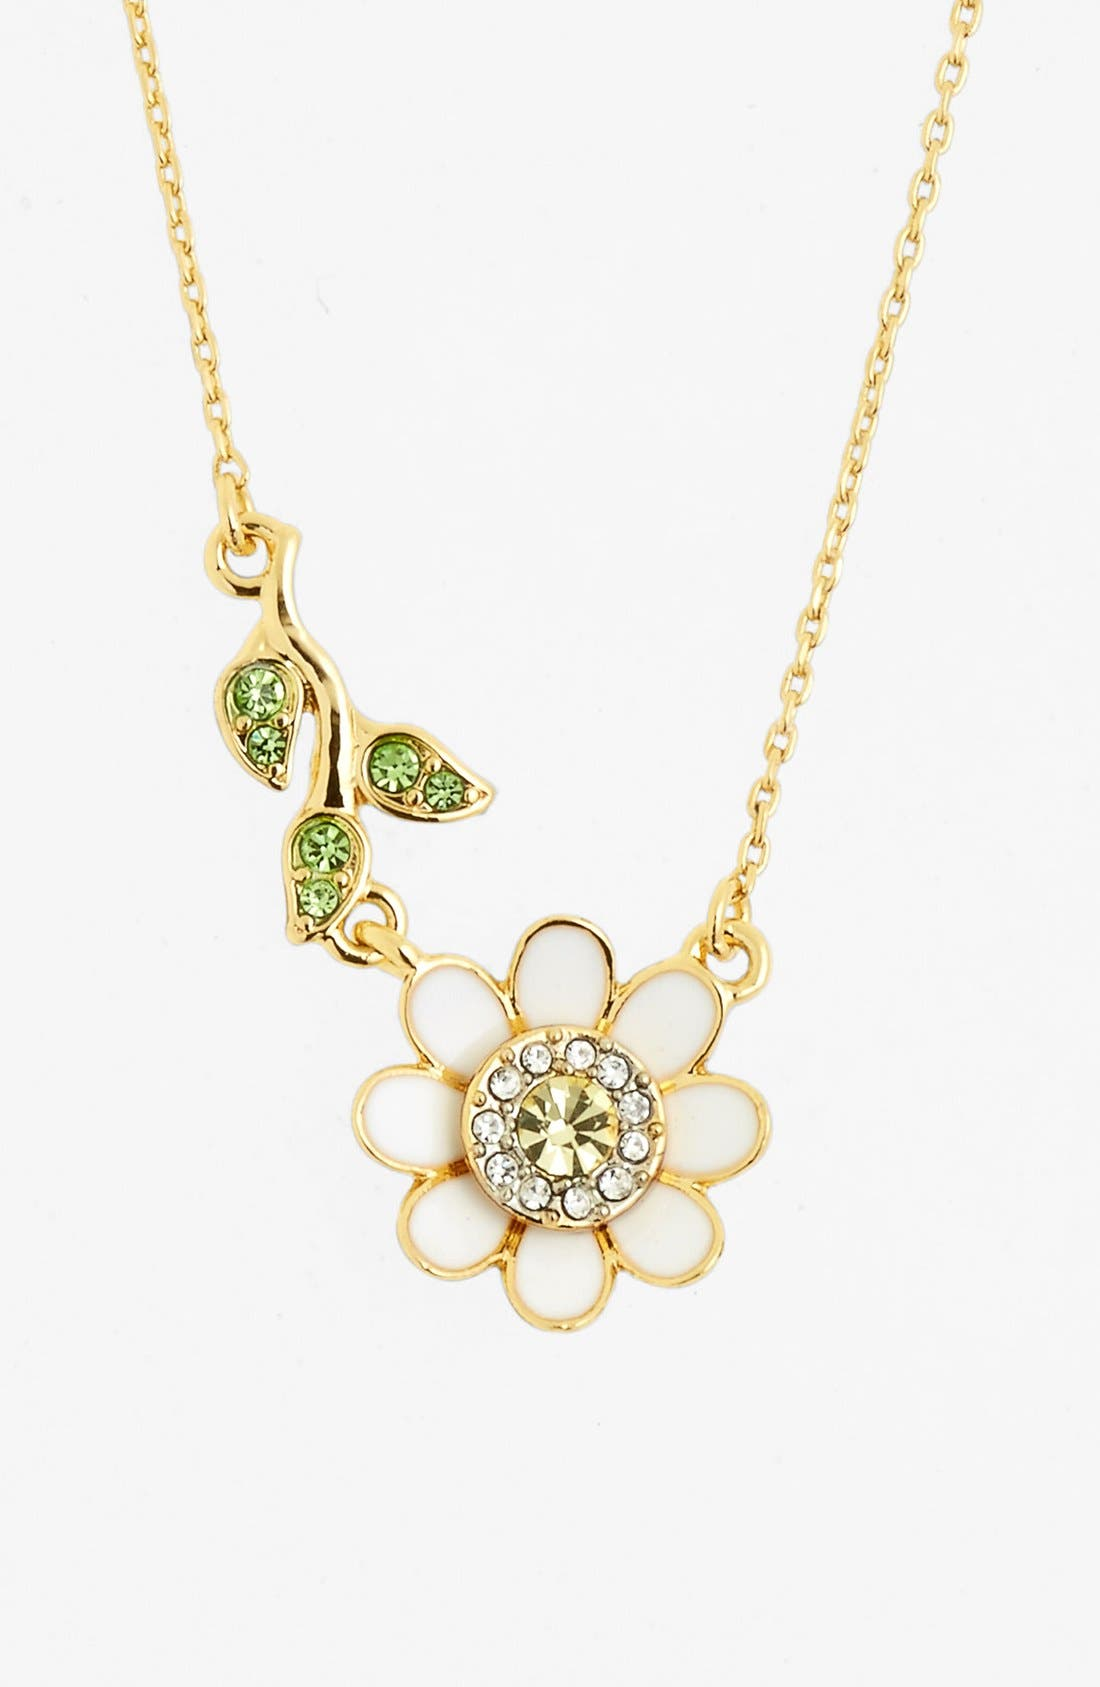 Main Image - Juicy Couture 'Juicy in Bloom' Daisy Pendant Necklace